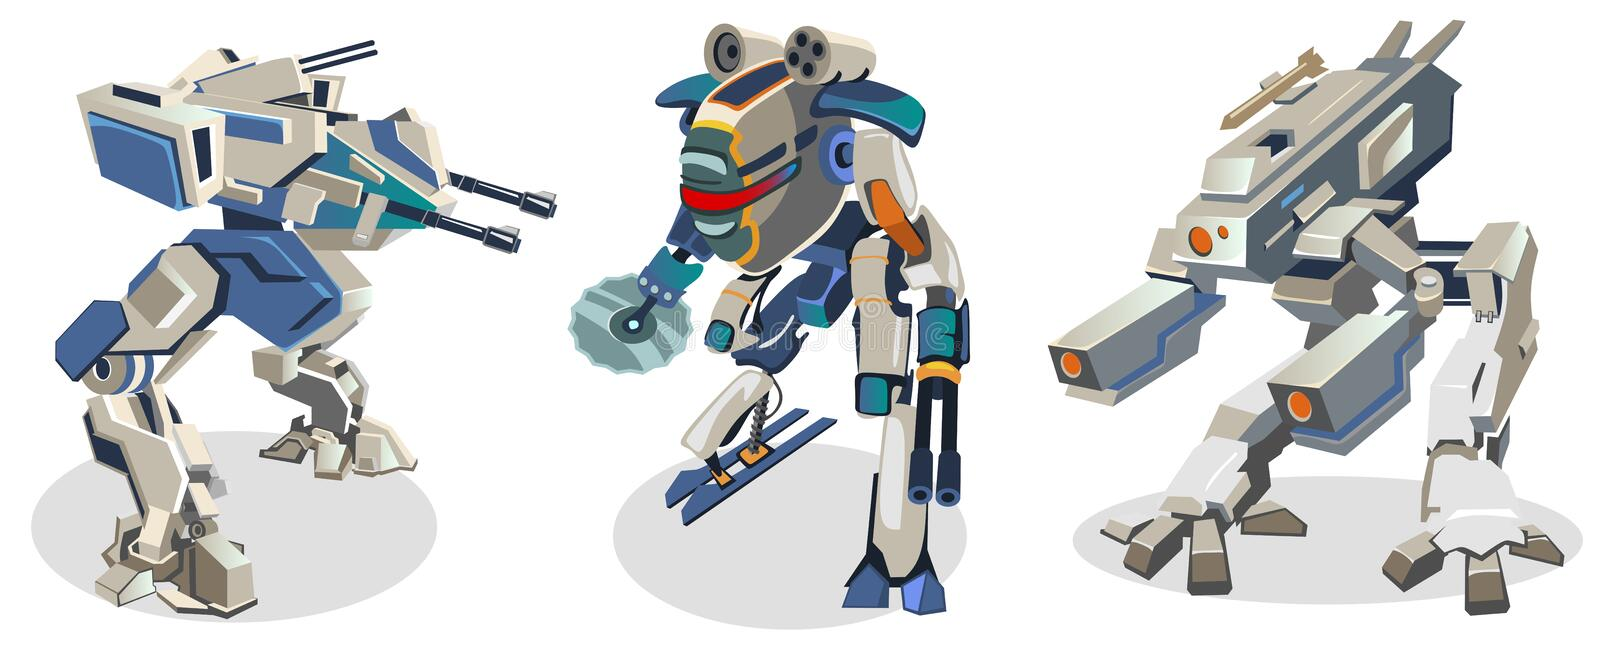 Set of futuristic cartoon space robots isolated on white background. Battle robots in space style. Vector illustration. vector illustration